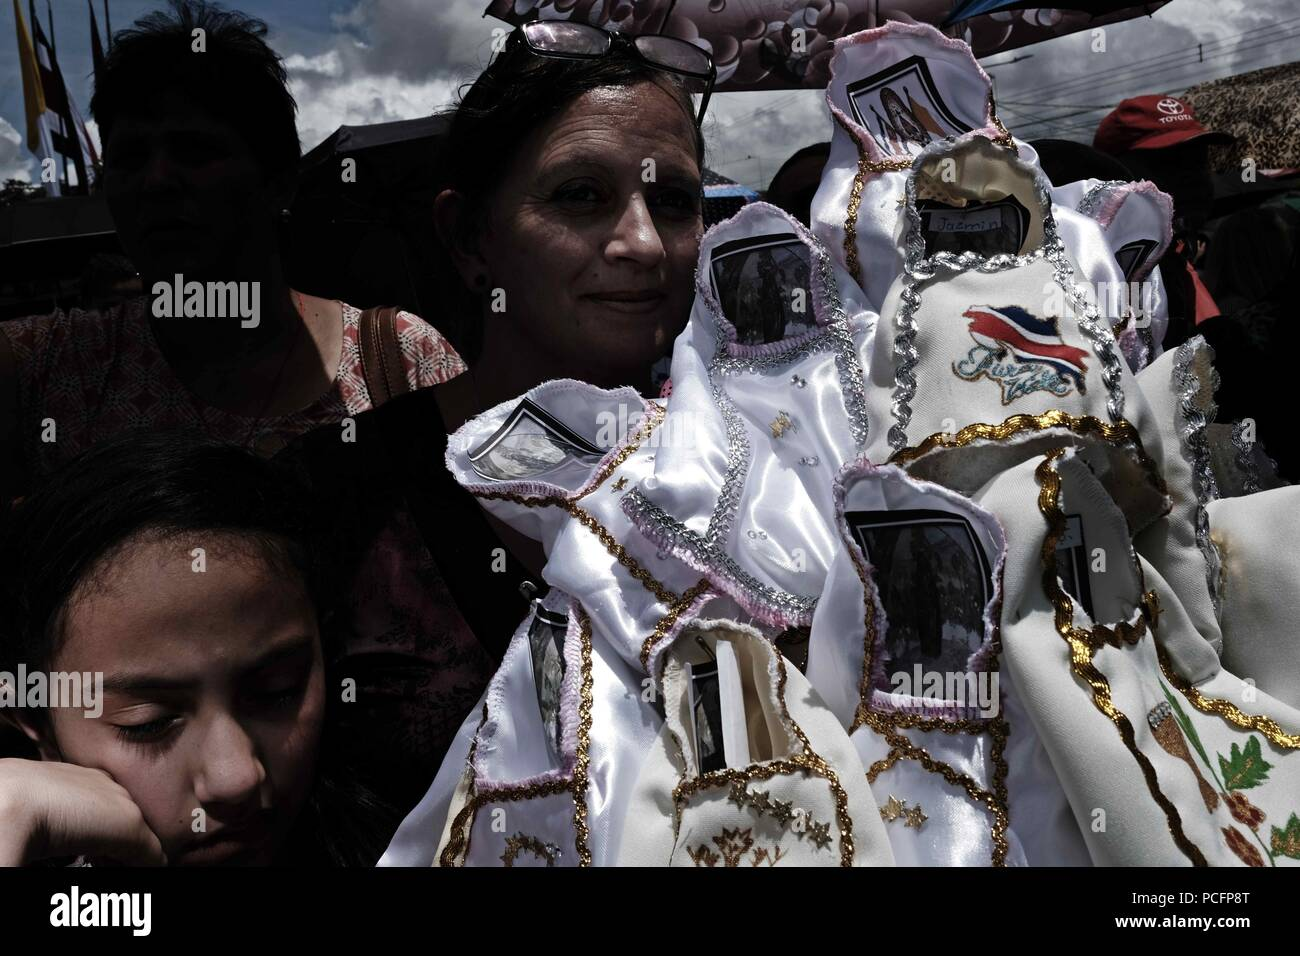 Cartago, Costa Rica. 02nd Aug, 2018. Thousands of Costa Ricans participate in the traditional pilgrimage towards the Basilica de los Angeles, in Cartago, Costa Rica, 1 August 2018. Thousands of Costa Ricans perform today the traditional pilgrimage to thank favors or ask for miracles to the Virgin of the Angels, patron of Costa Rica, in the largest show of Catholic faith in this Central American country. Credit: Jeffrey Arguedas/EFE/Alamy Live News - Stock Image